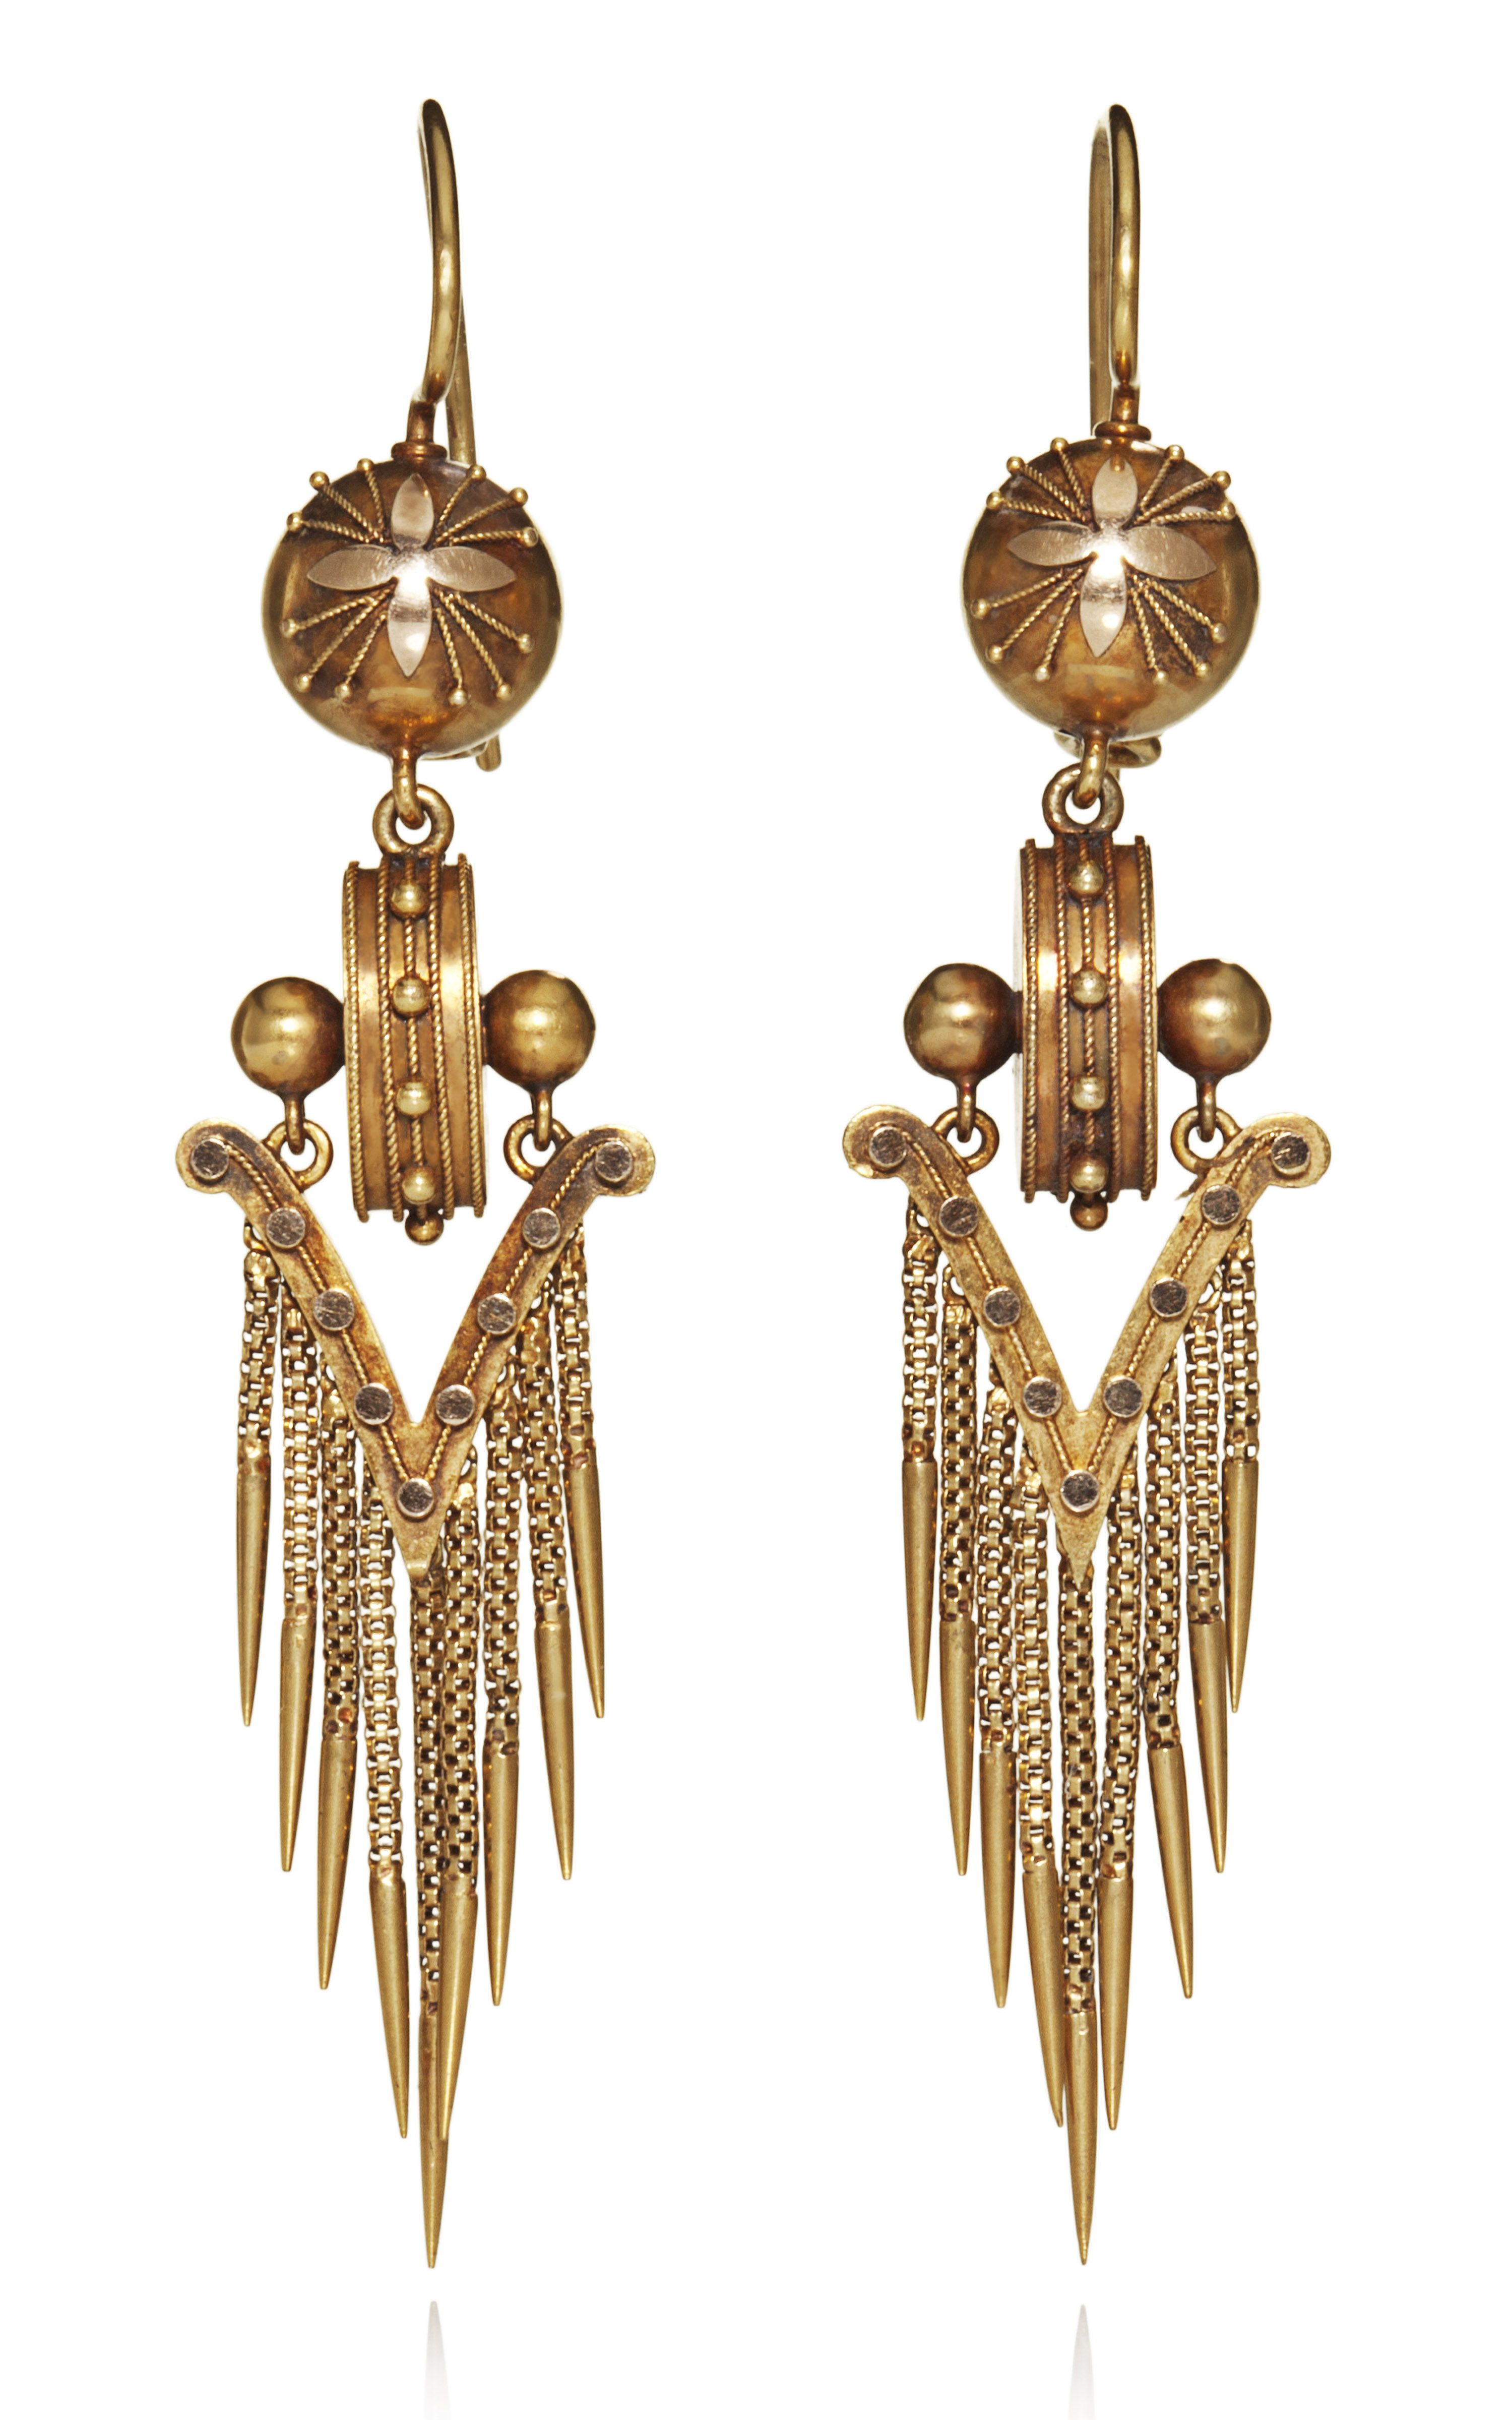 jewelry history the etruscan revival jewelry antique